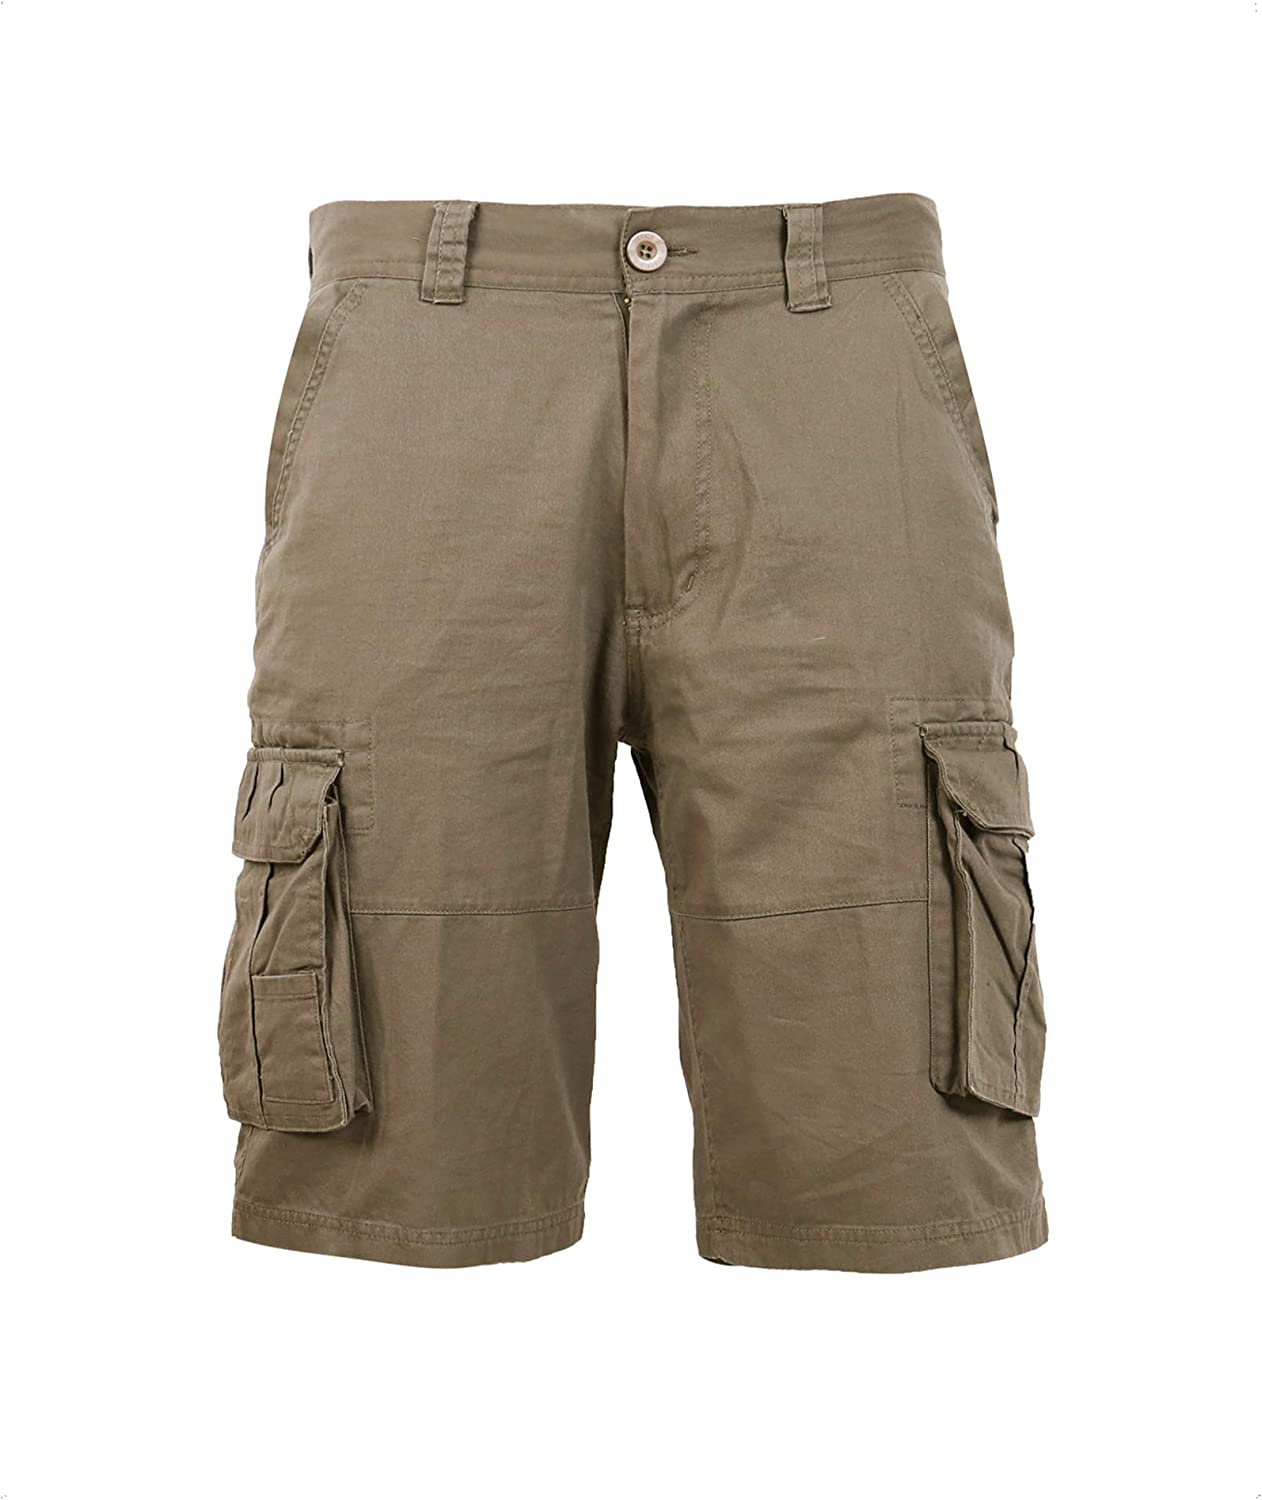 Coevals Club Men's Casual Cargo Shorts Cotton Twill Multi Pockets Outdoor Shorts